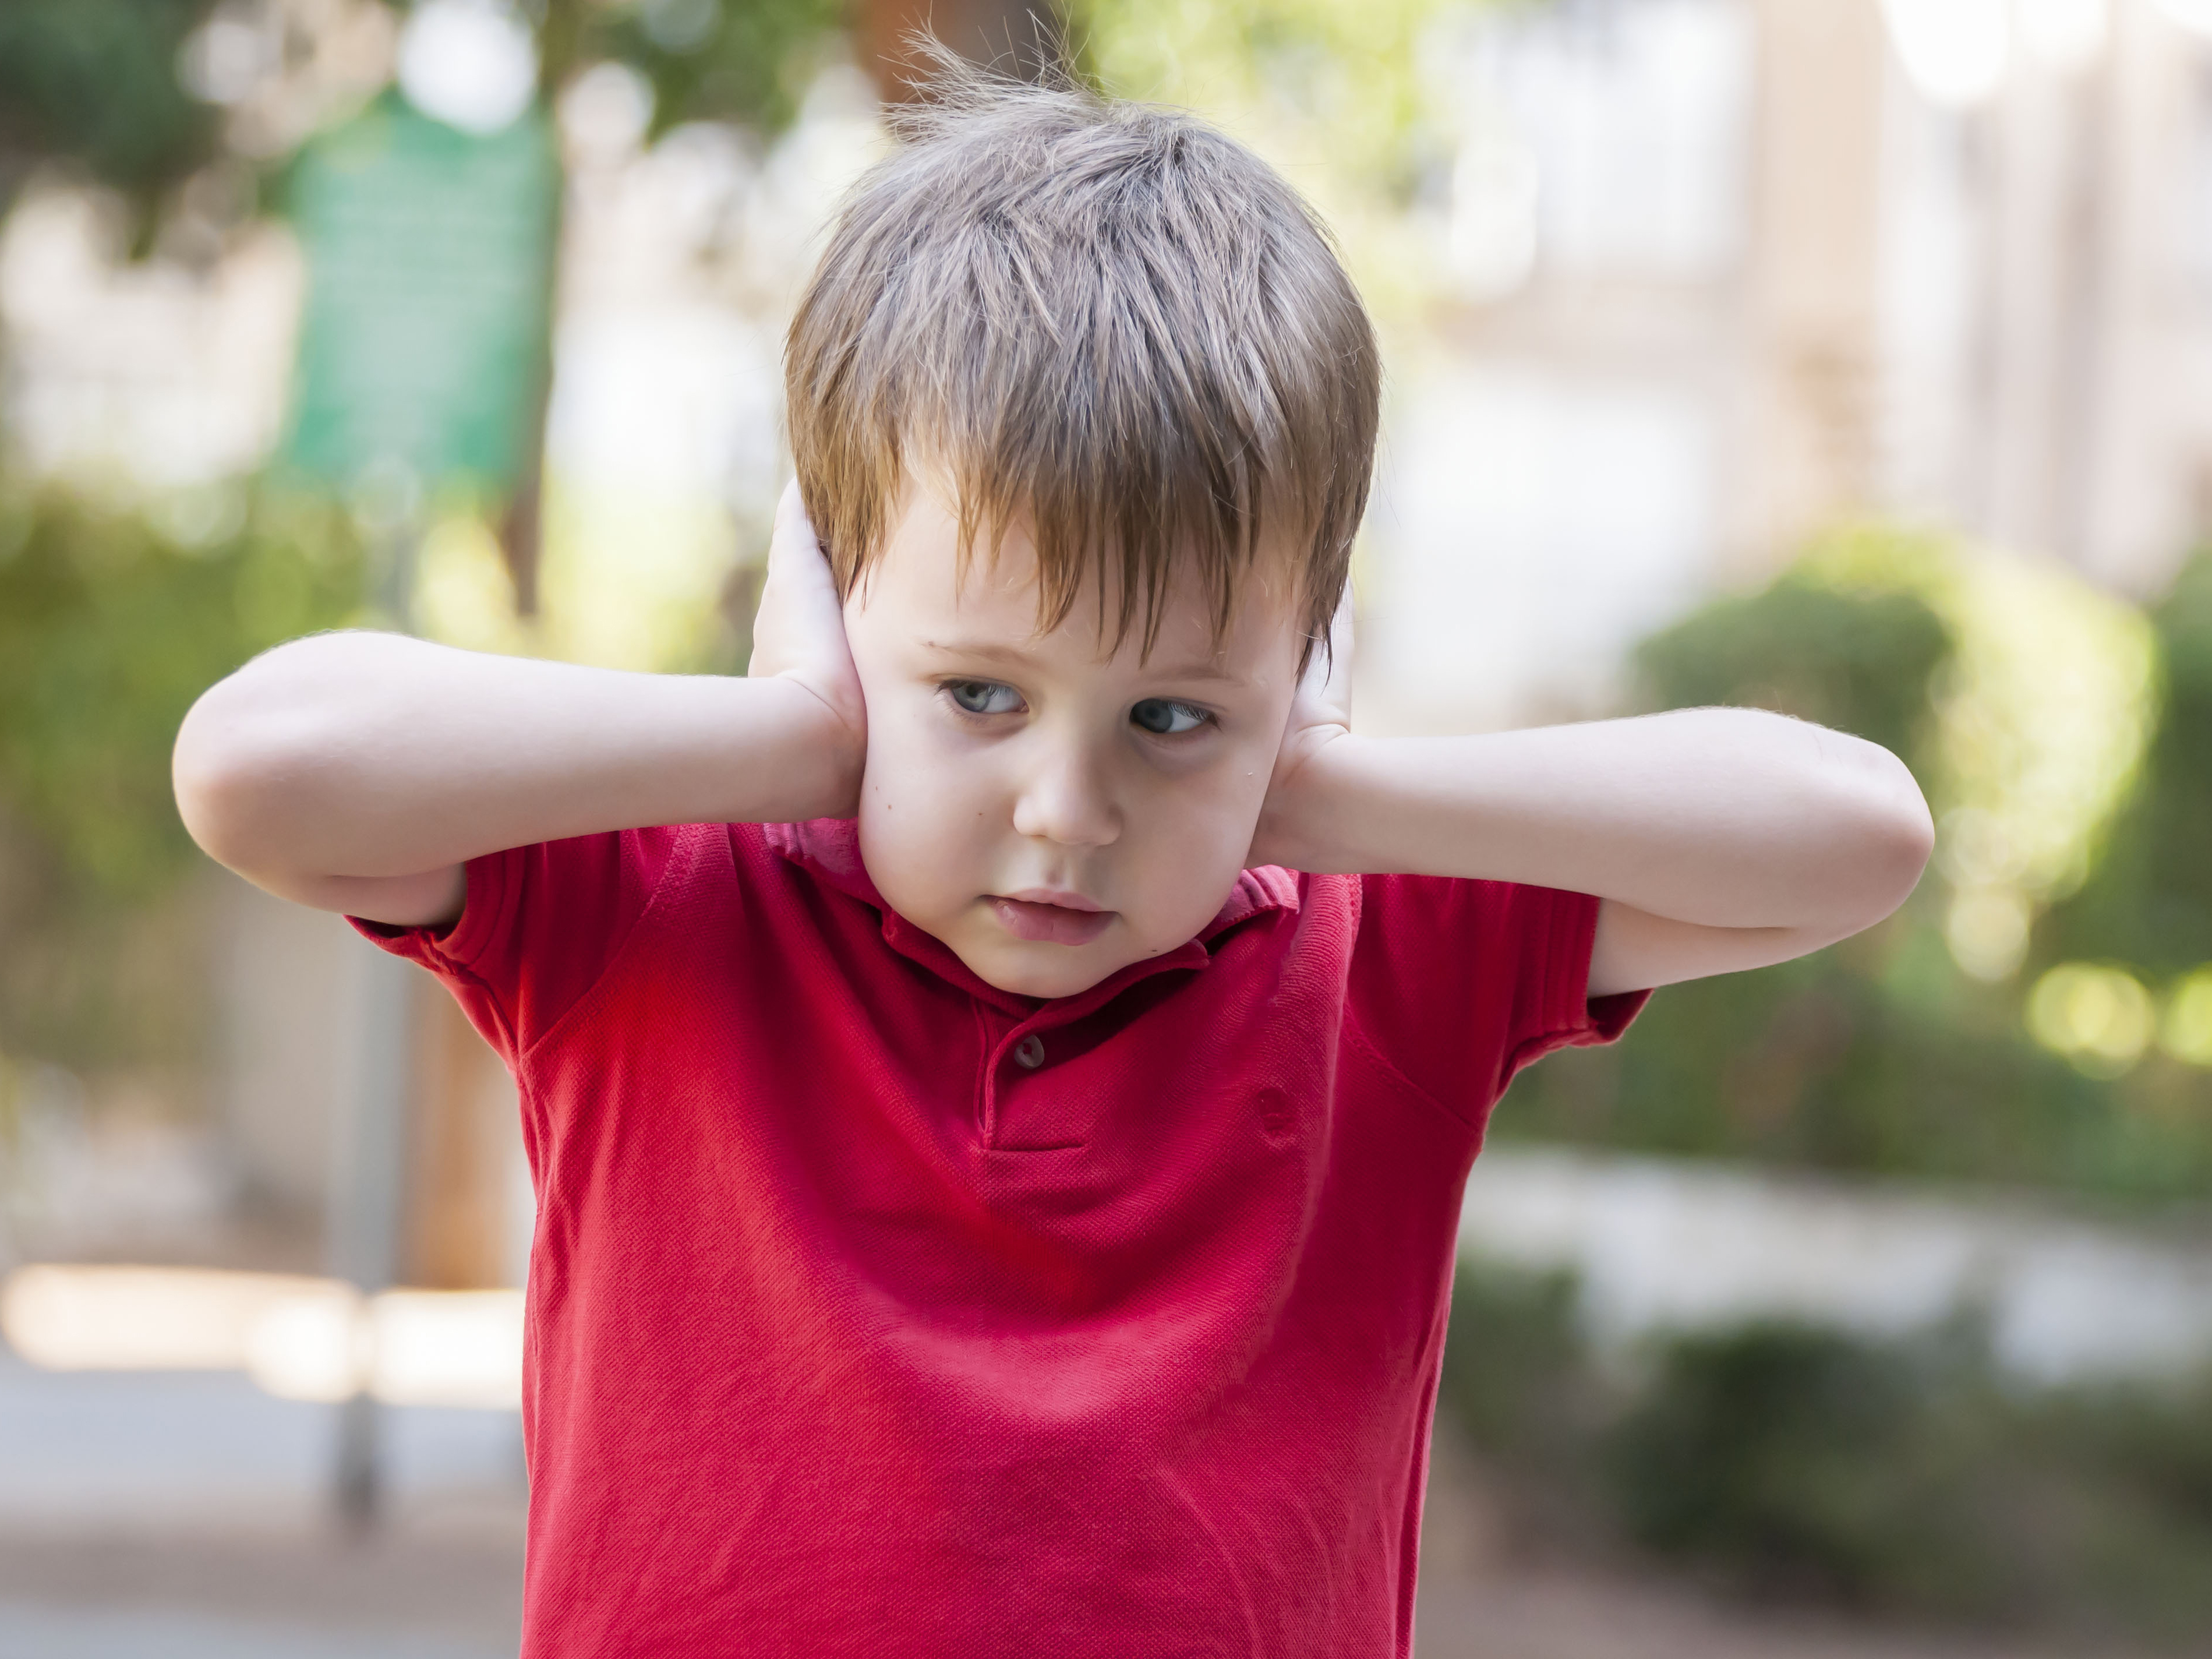 Signs of autism and the road to diagnosis